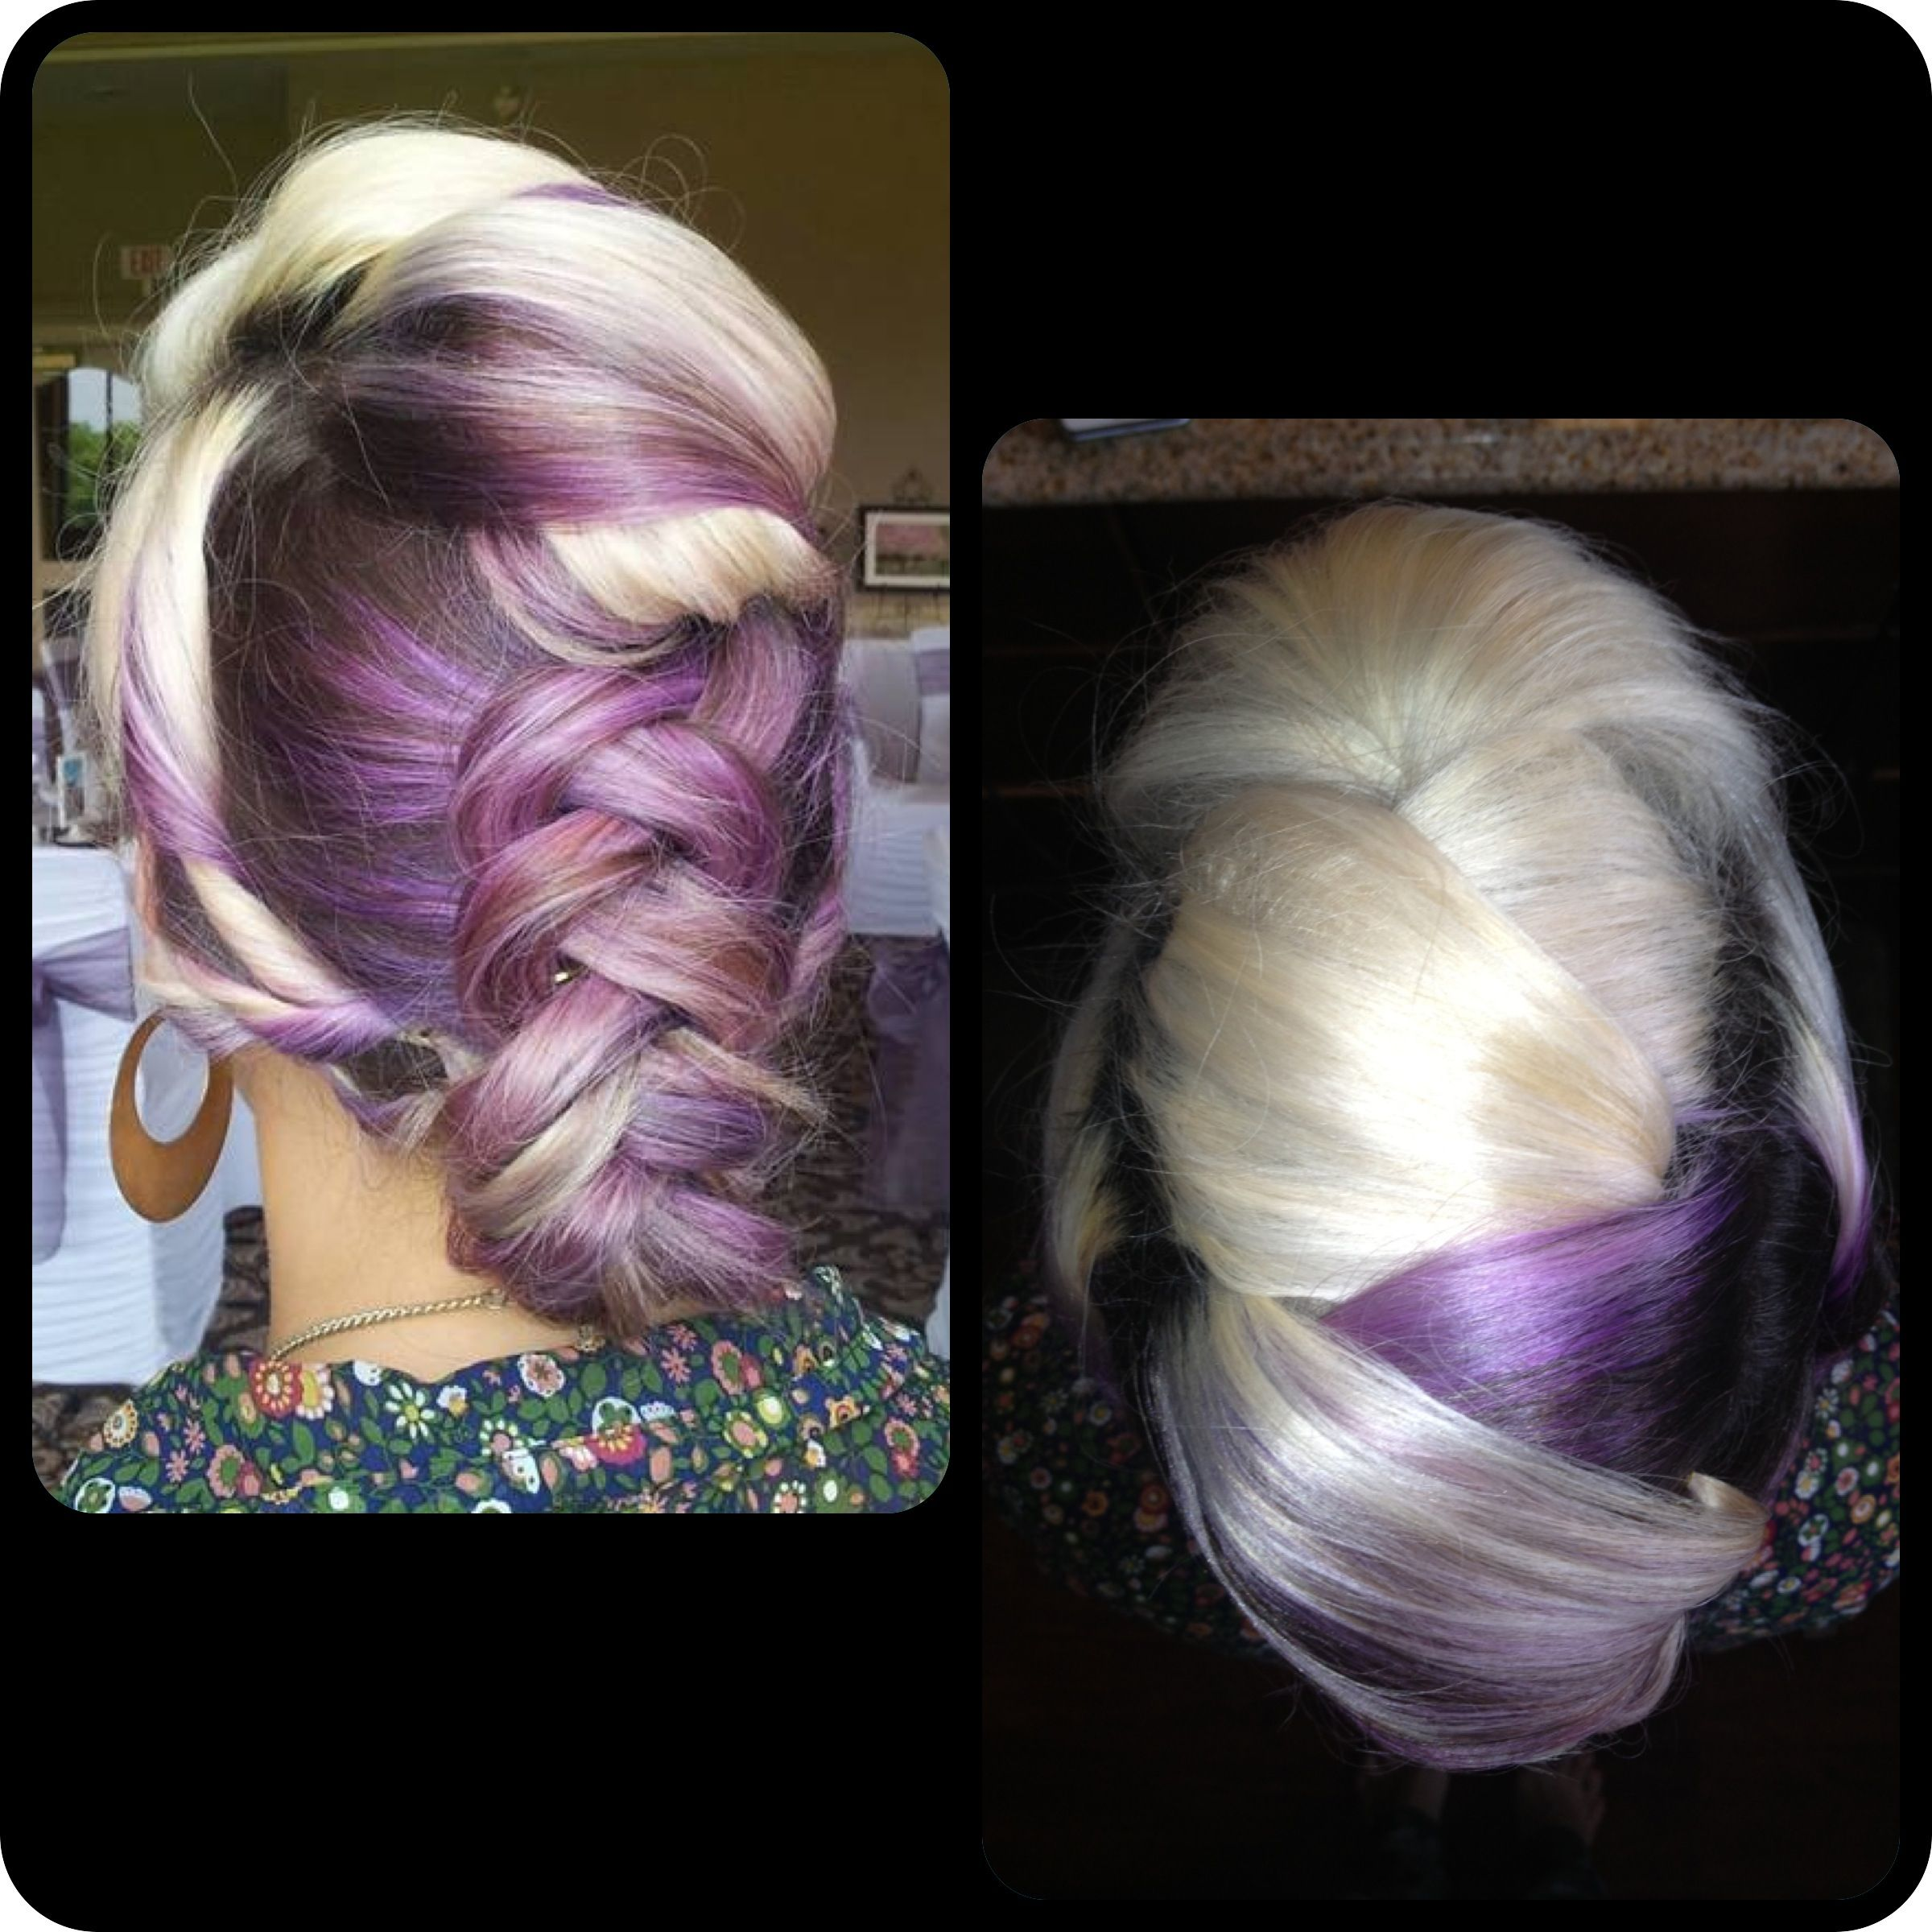 Faux hawk Updo, formal do, prom hair, inverted braid.  Purple and blonde hair.